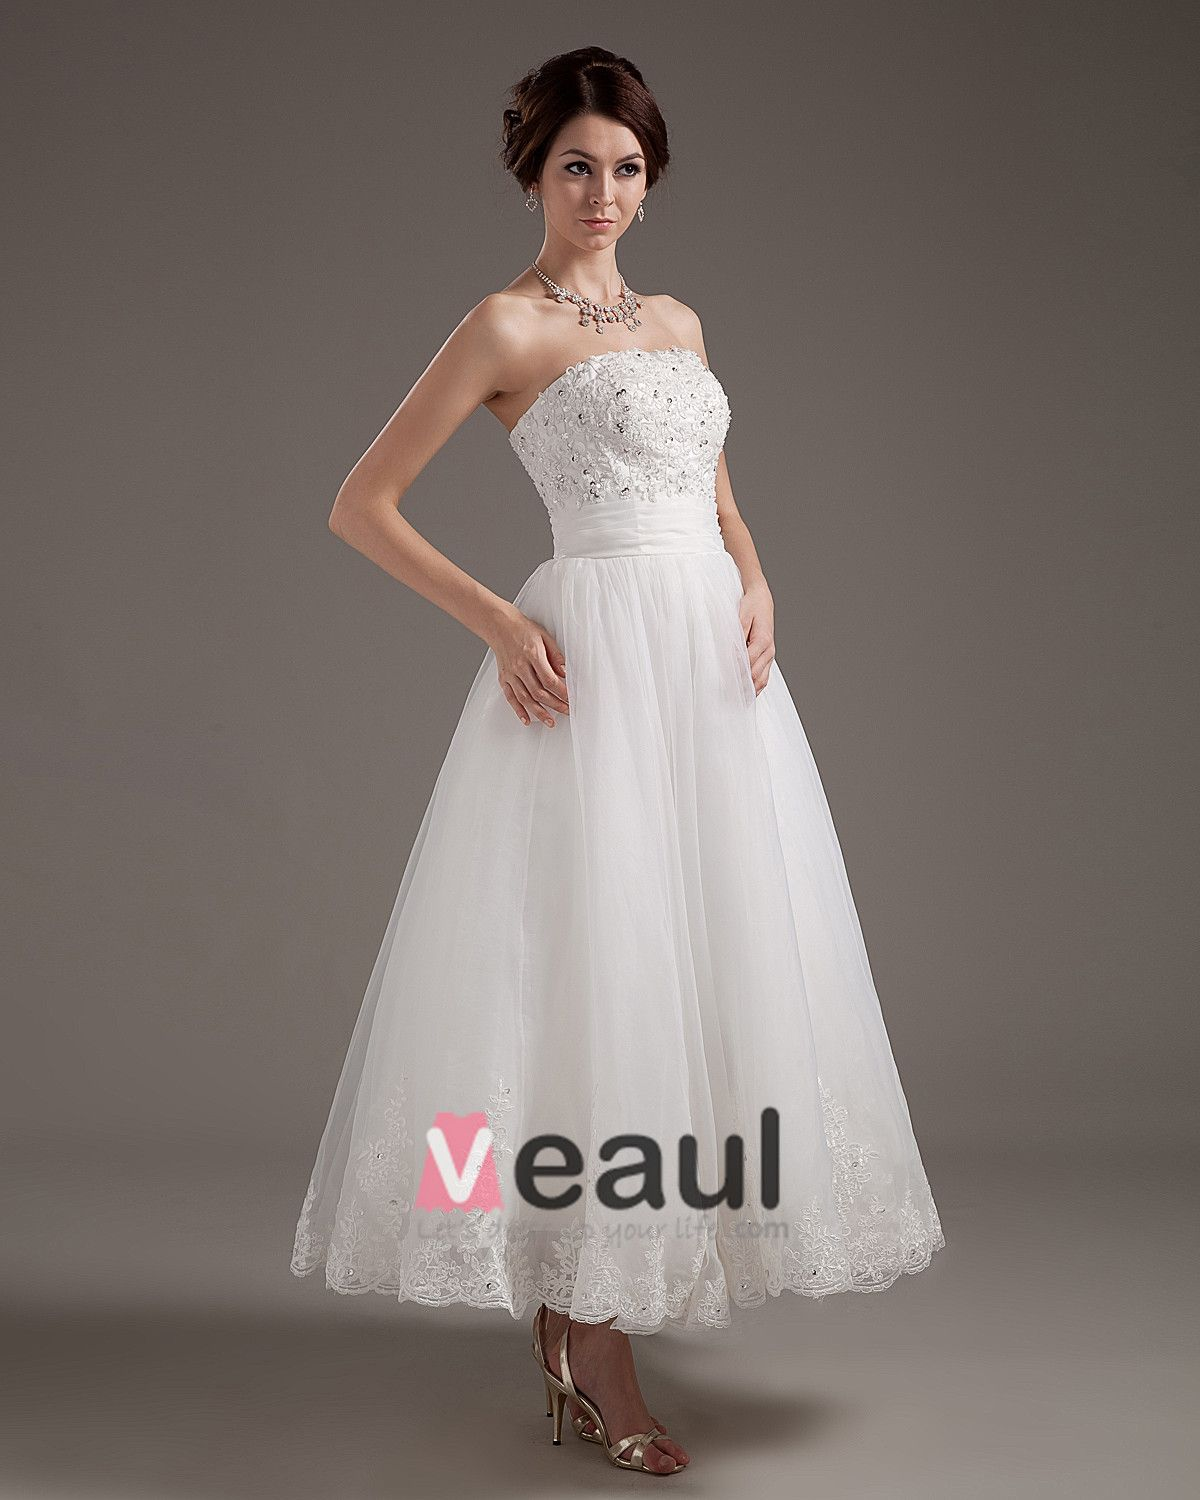 Lace Applique Satin Yarn Strapless Short Mini Wedding Dresses